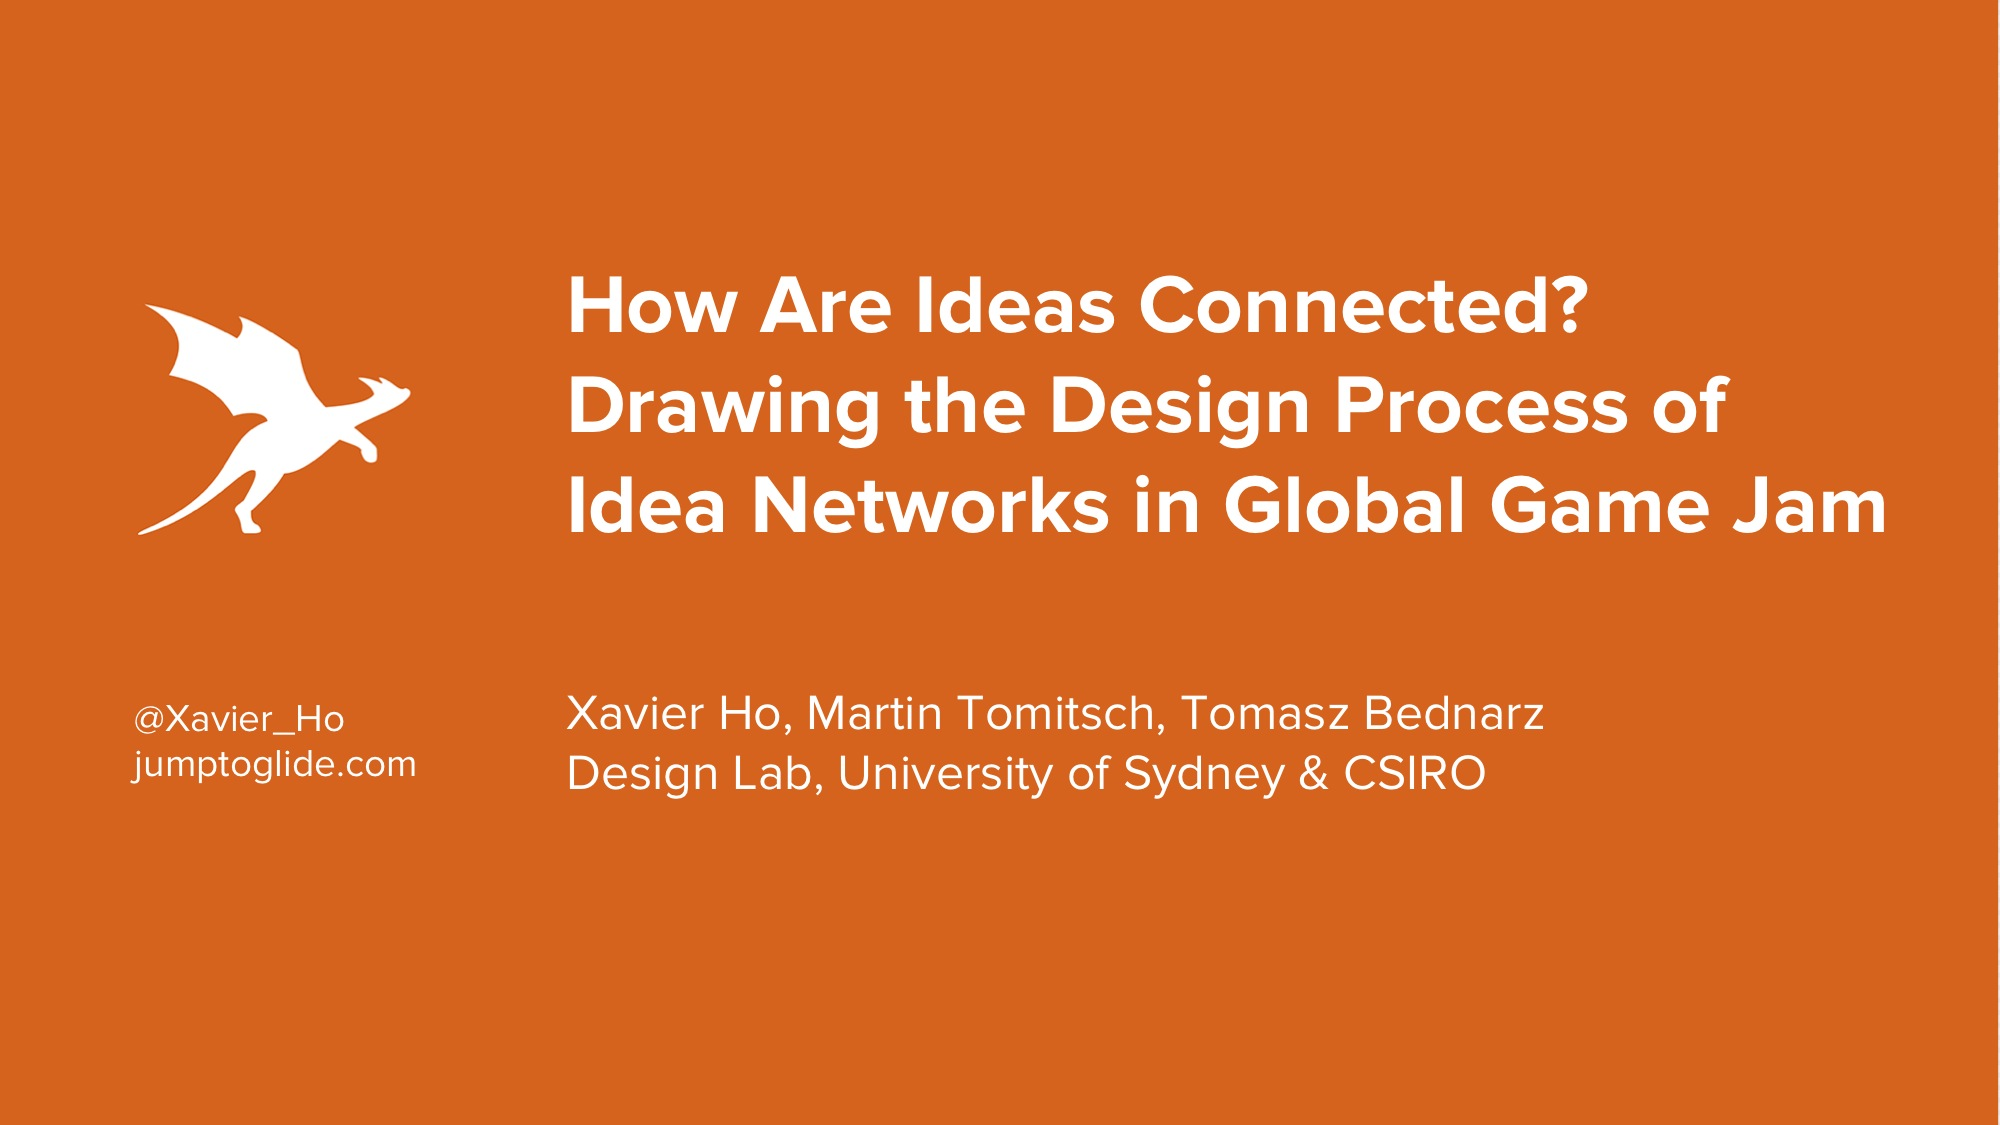 2014.10.17 - -How Are Ideas Connected- Drawing the Design Process of Idea Networks in Global Game Jam- - Meaningful Play 2014 1.jpeg